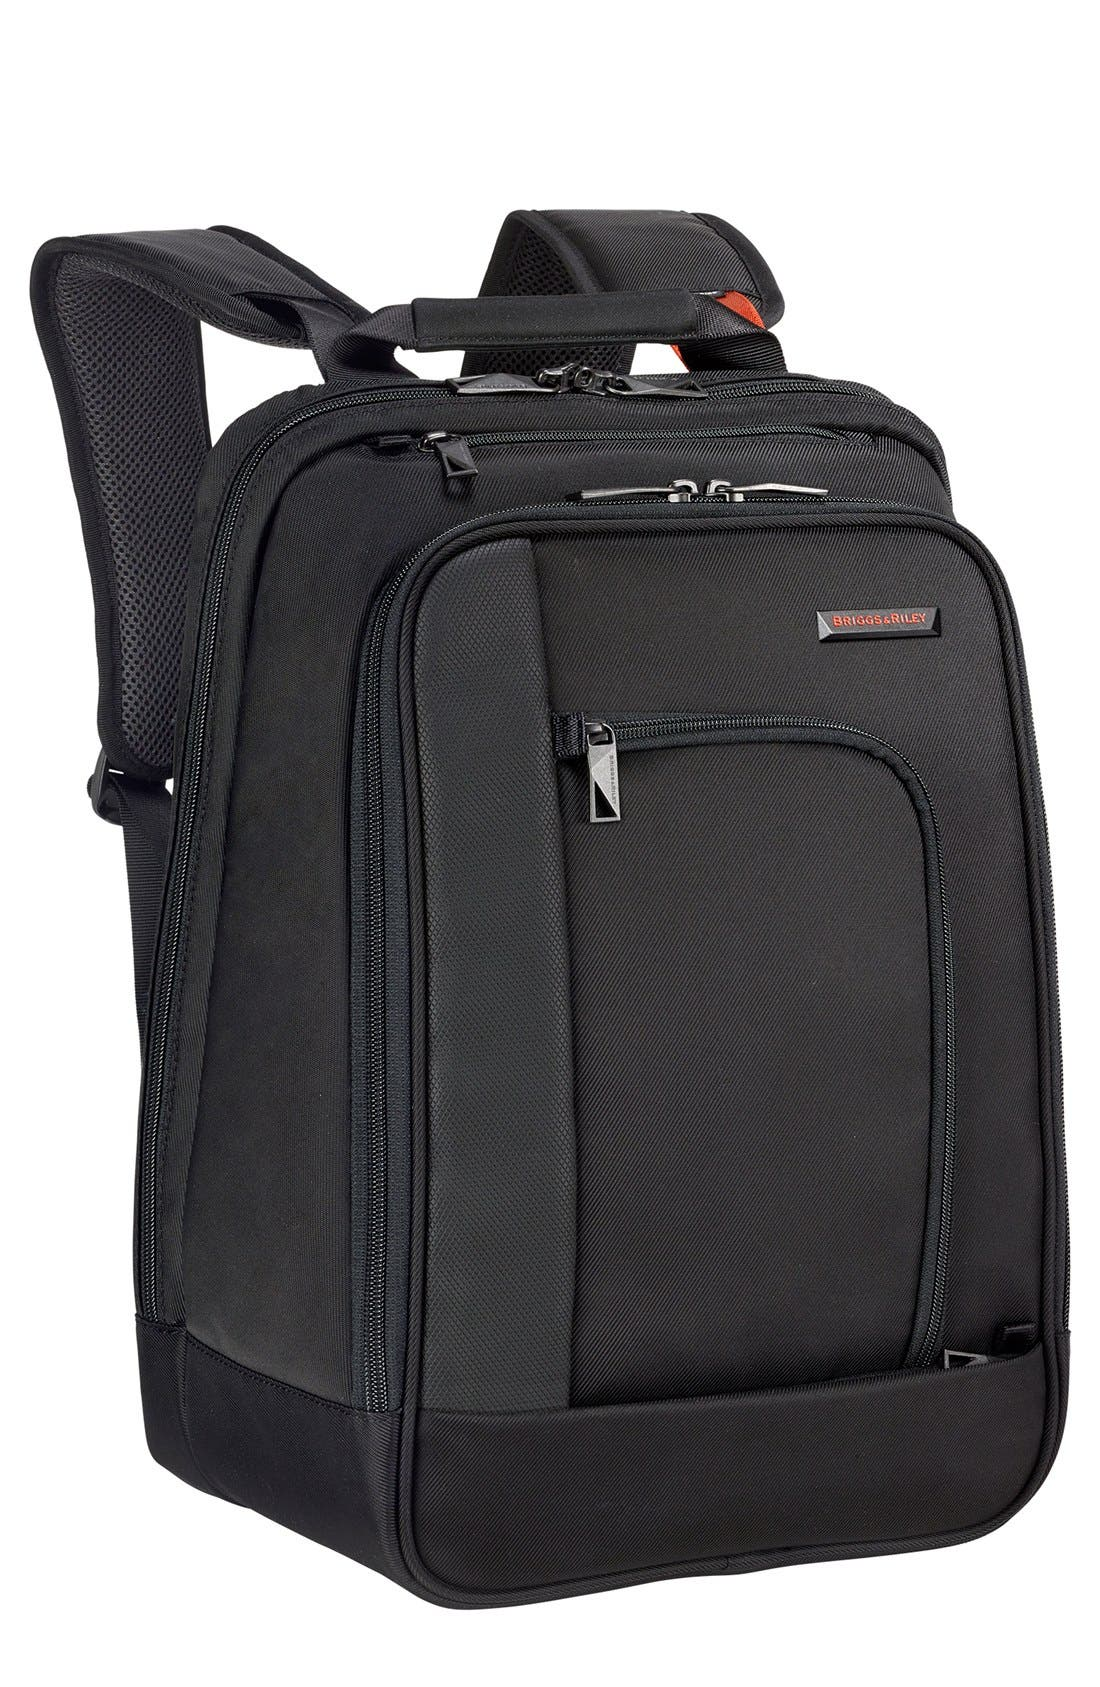 Verb - Activate Backpack,                             Main thumbnail 1, color,                             BLACK